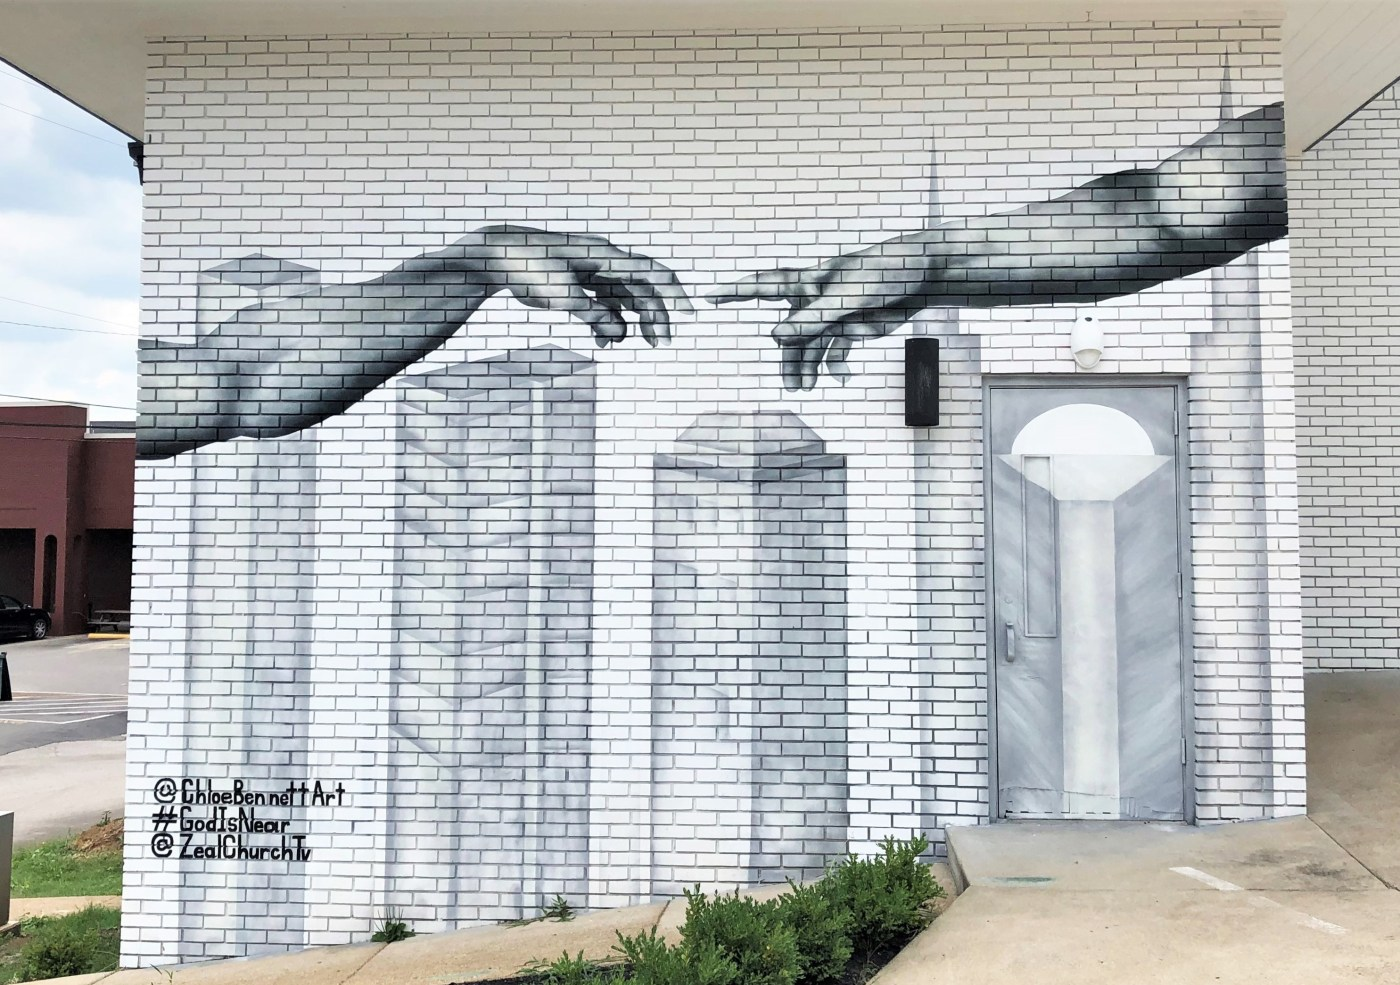 Creation Hands mural street art Nashville